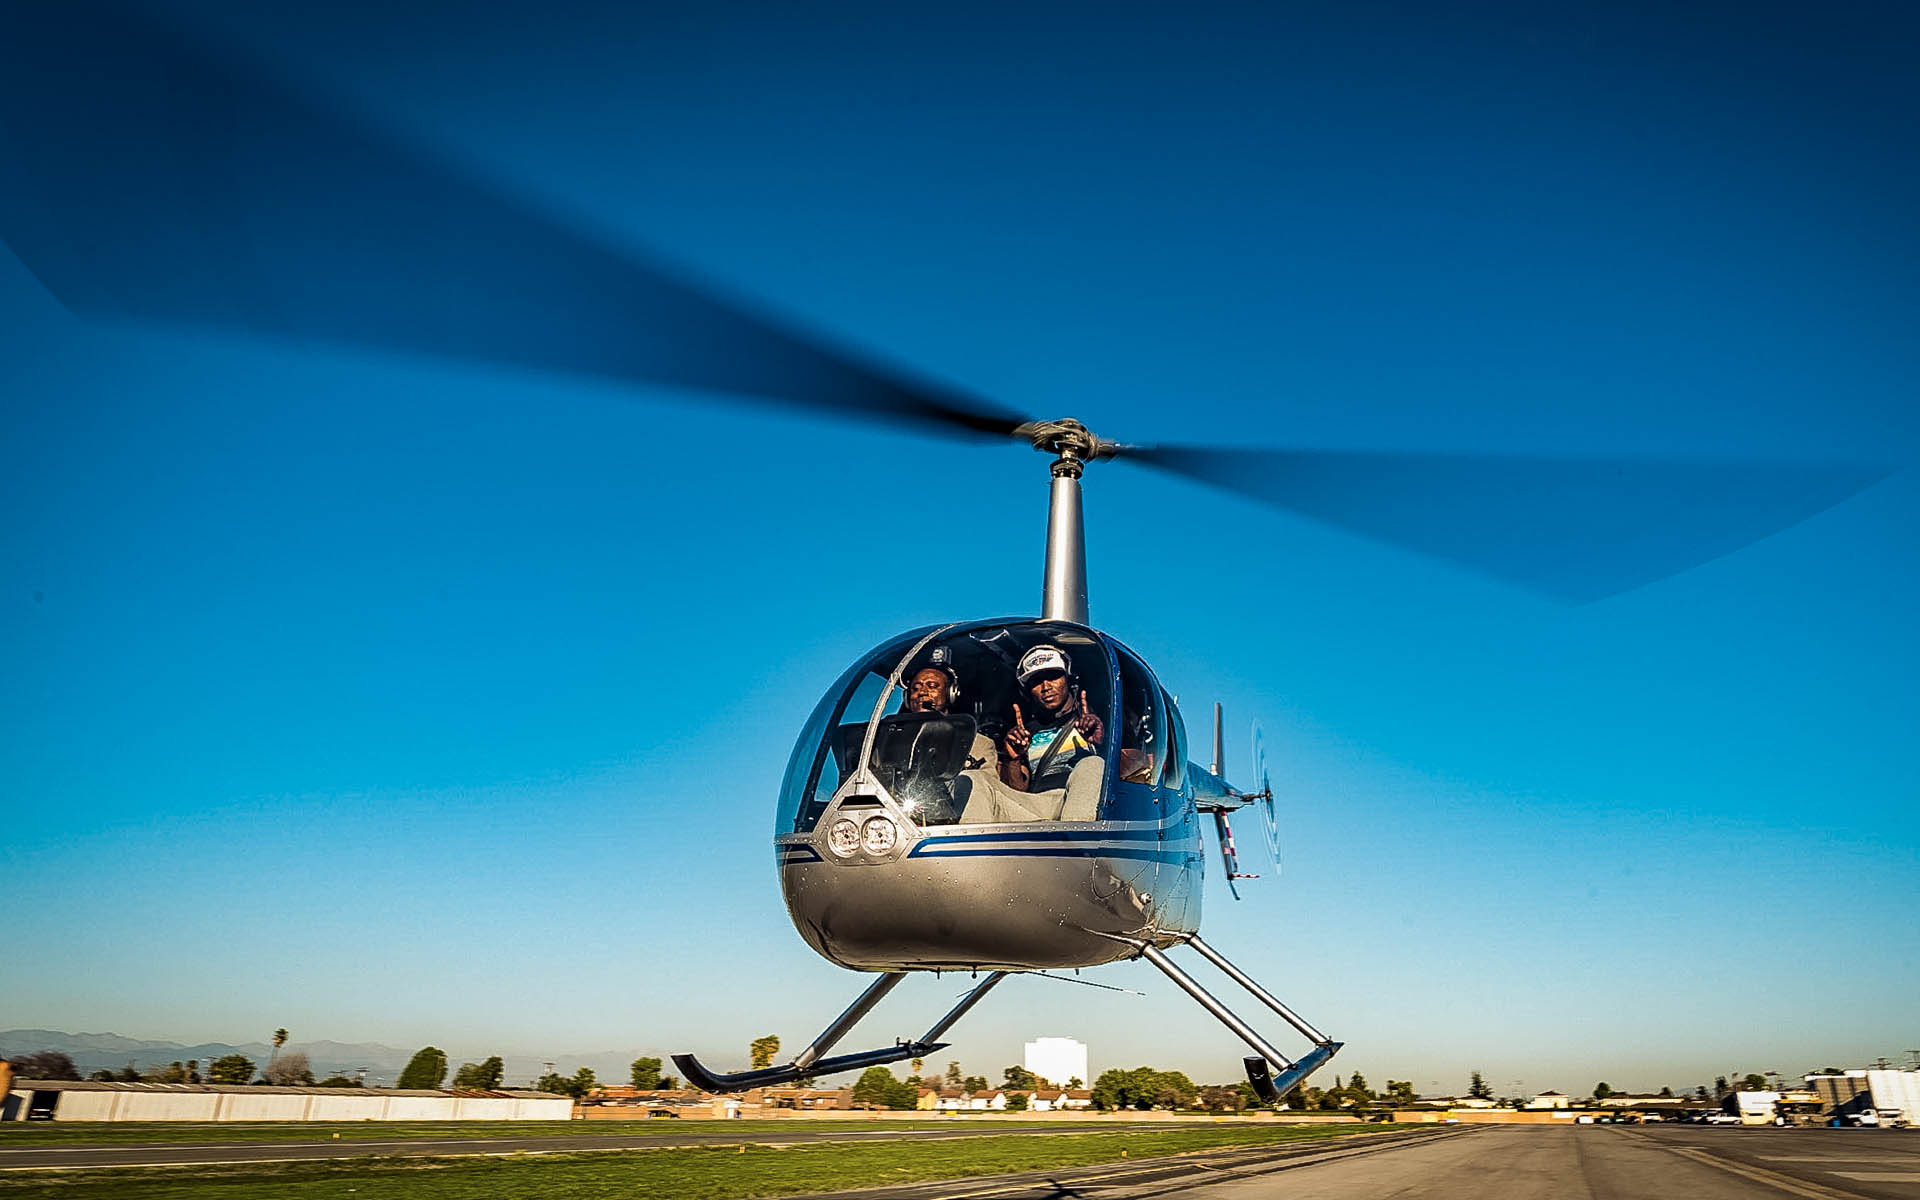 Robin flying the R22 with the Dodger's Yasiel Puig